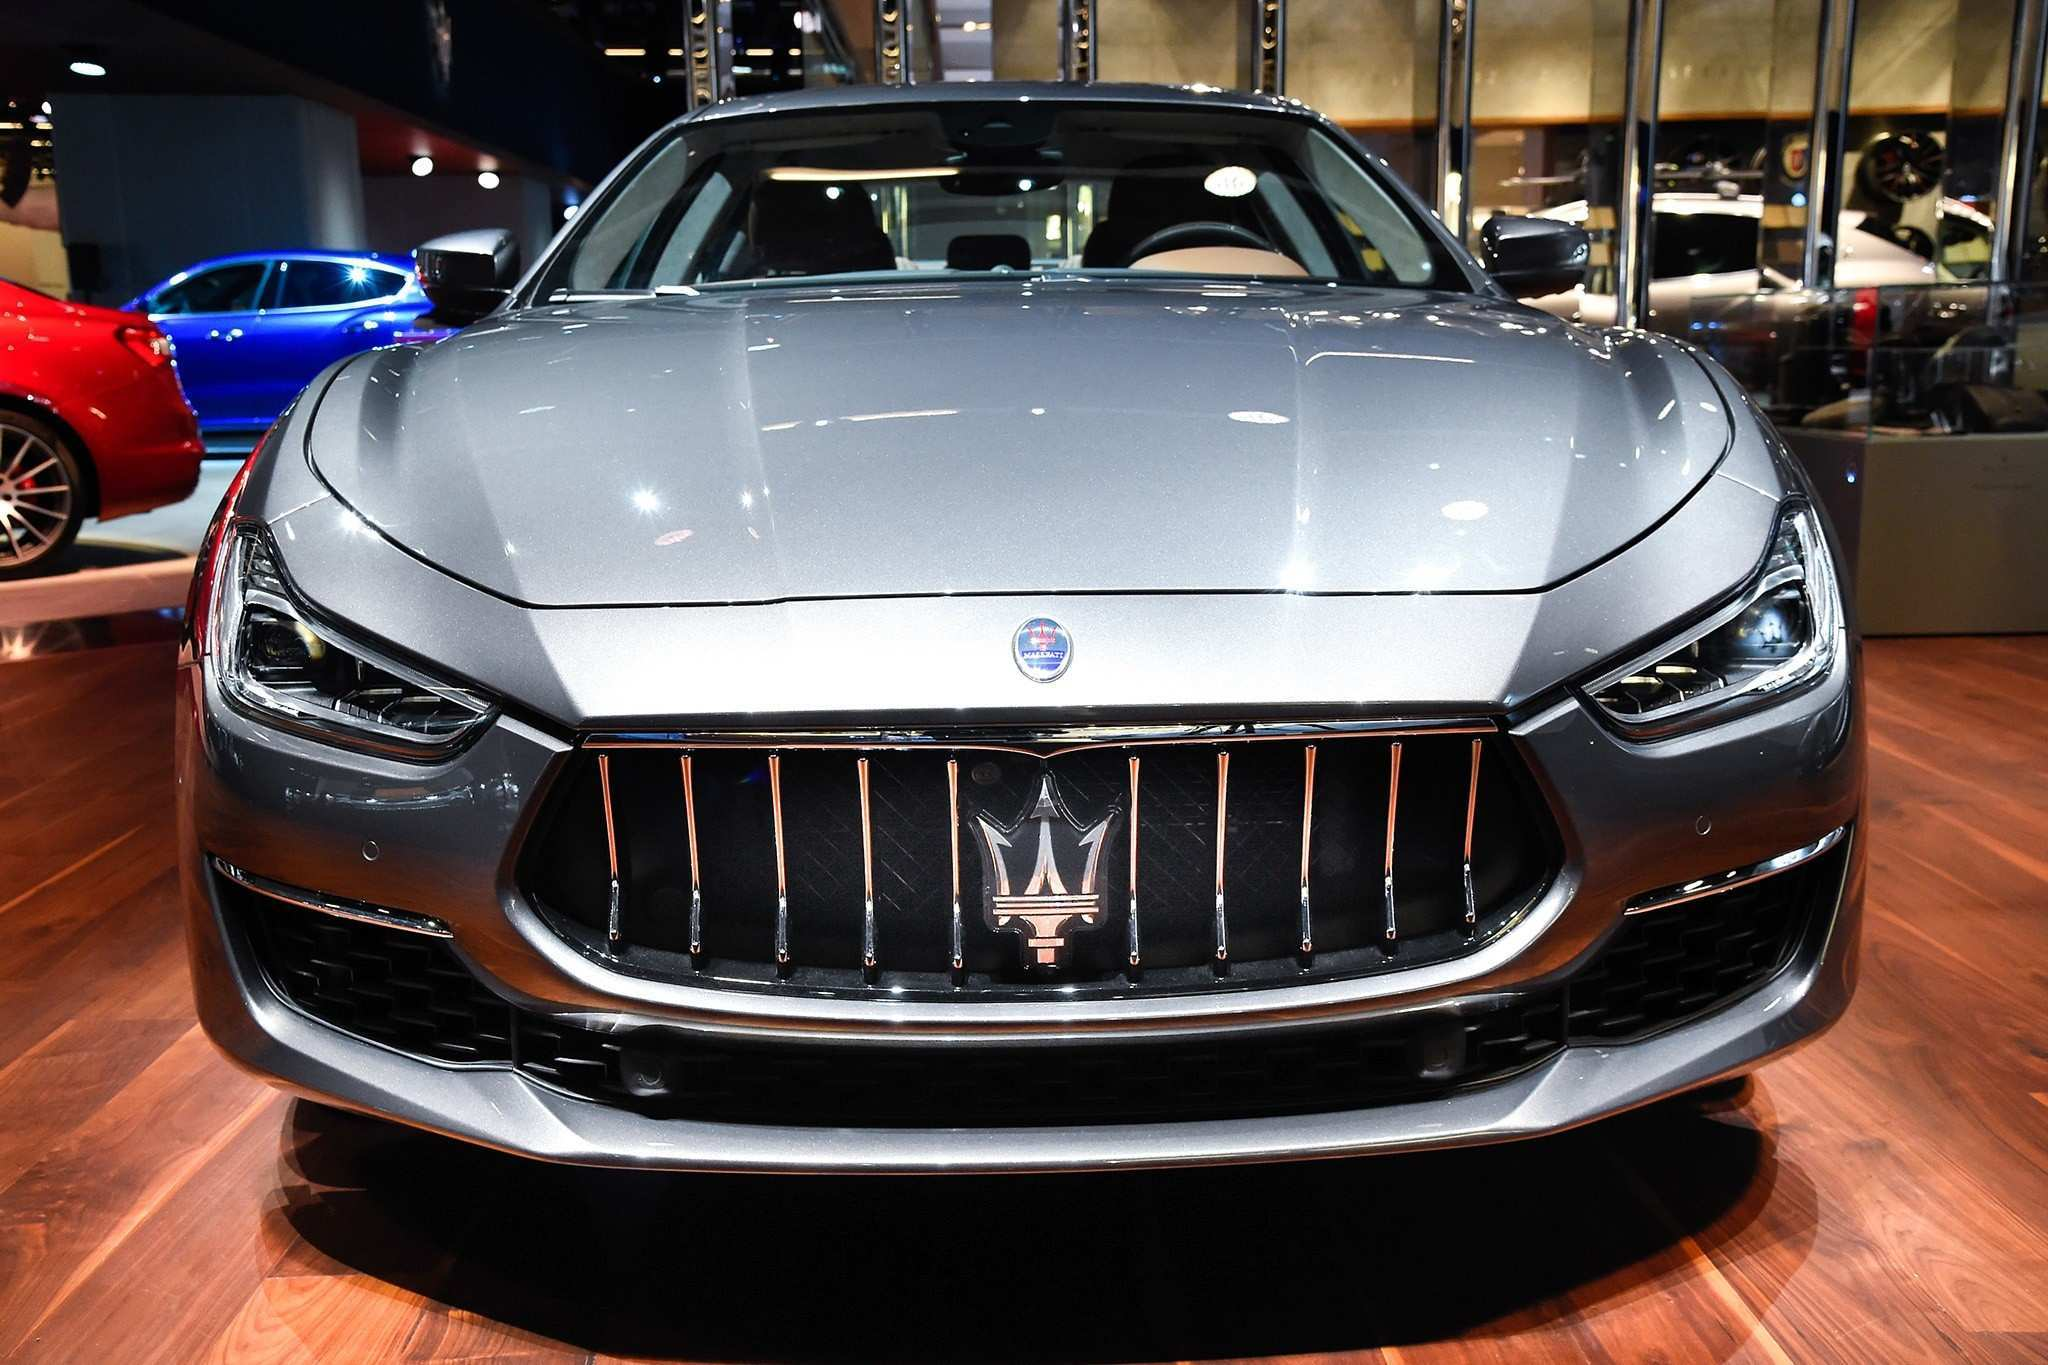 51 All New 2020 Maserati Quattroportes Reviews for 2020 Maserati Quattroportes